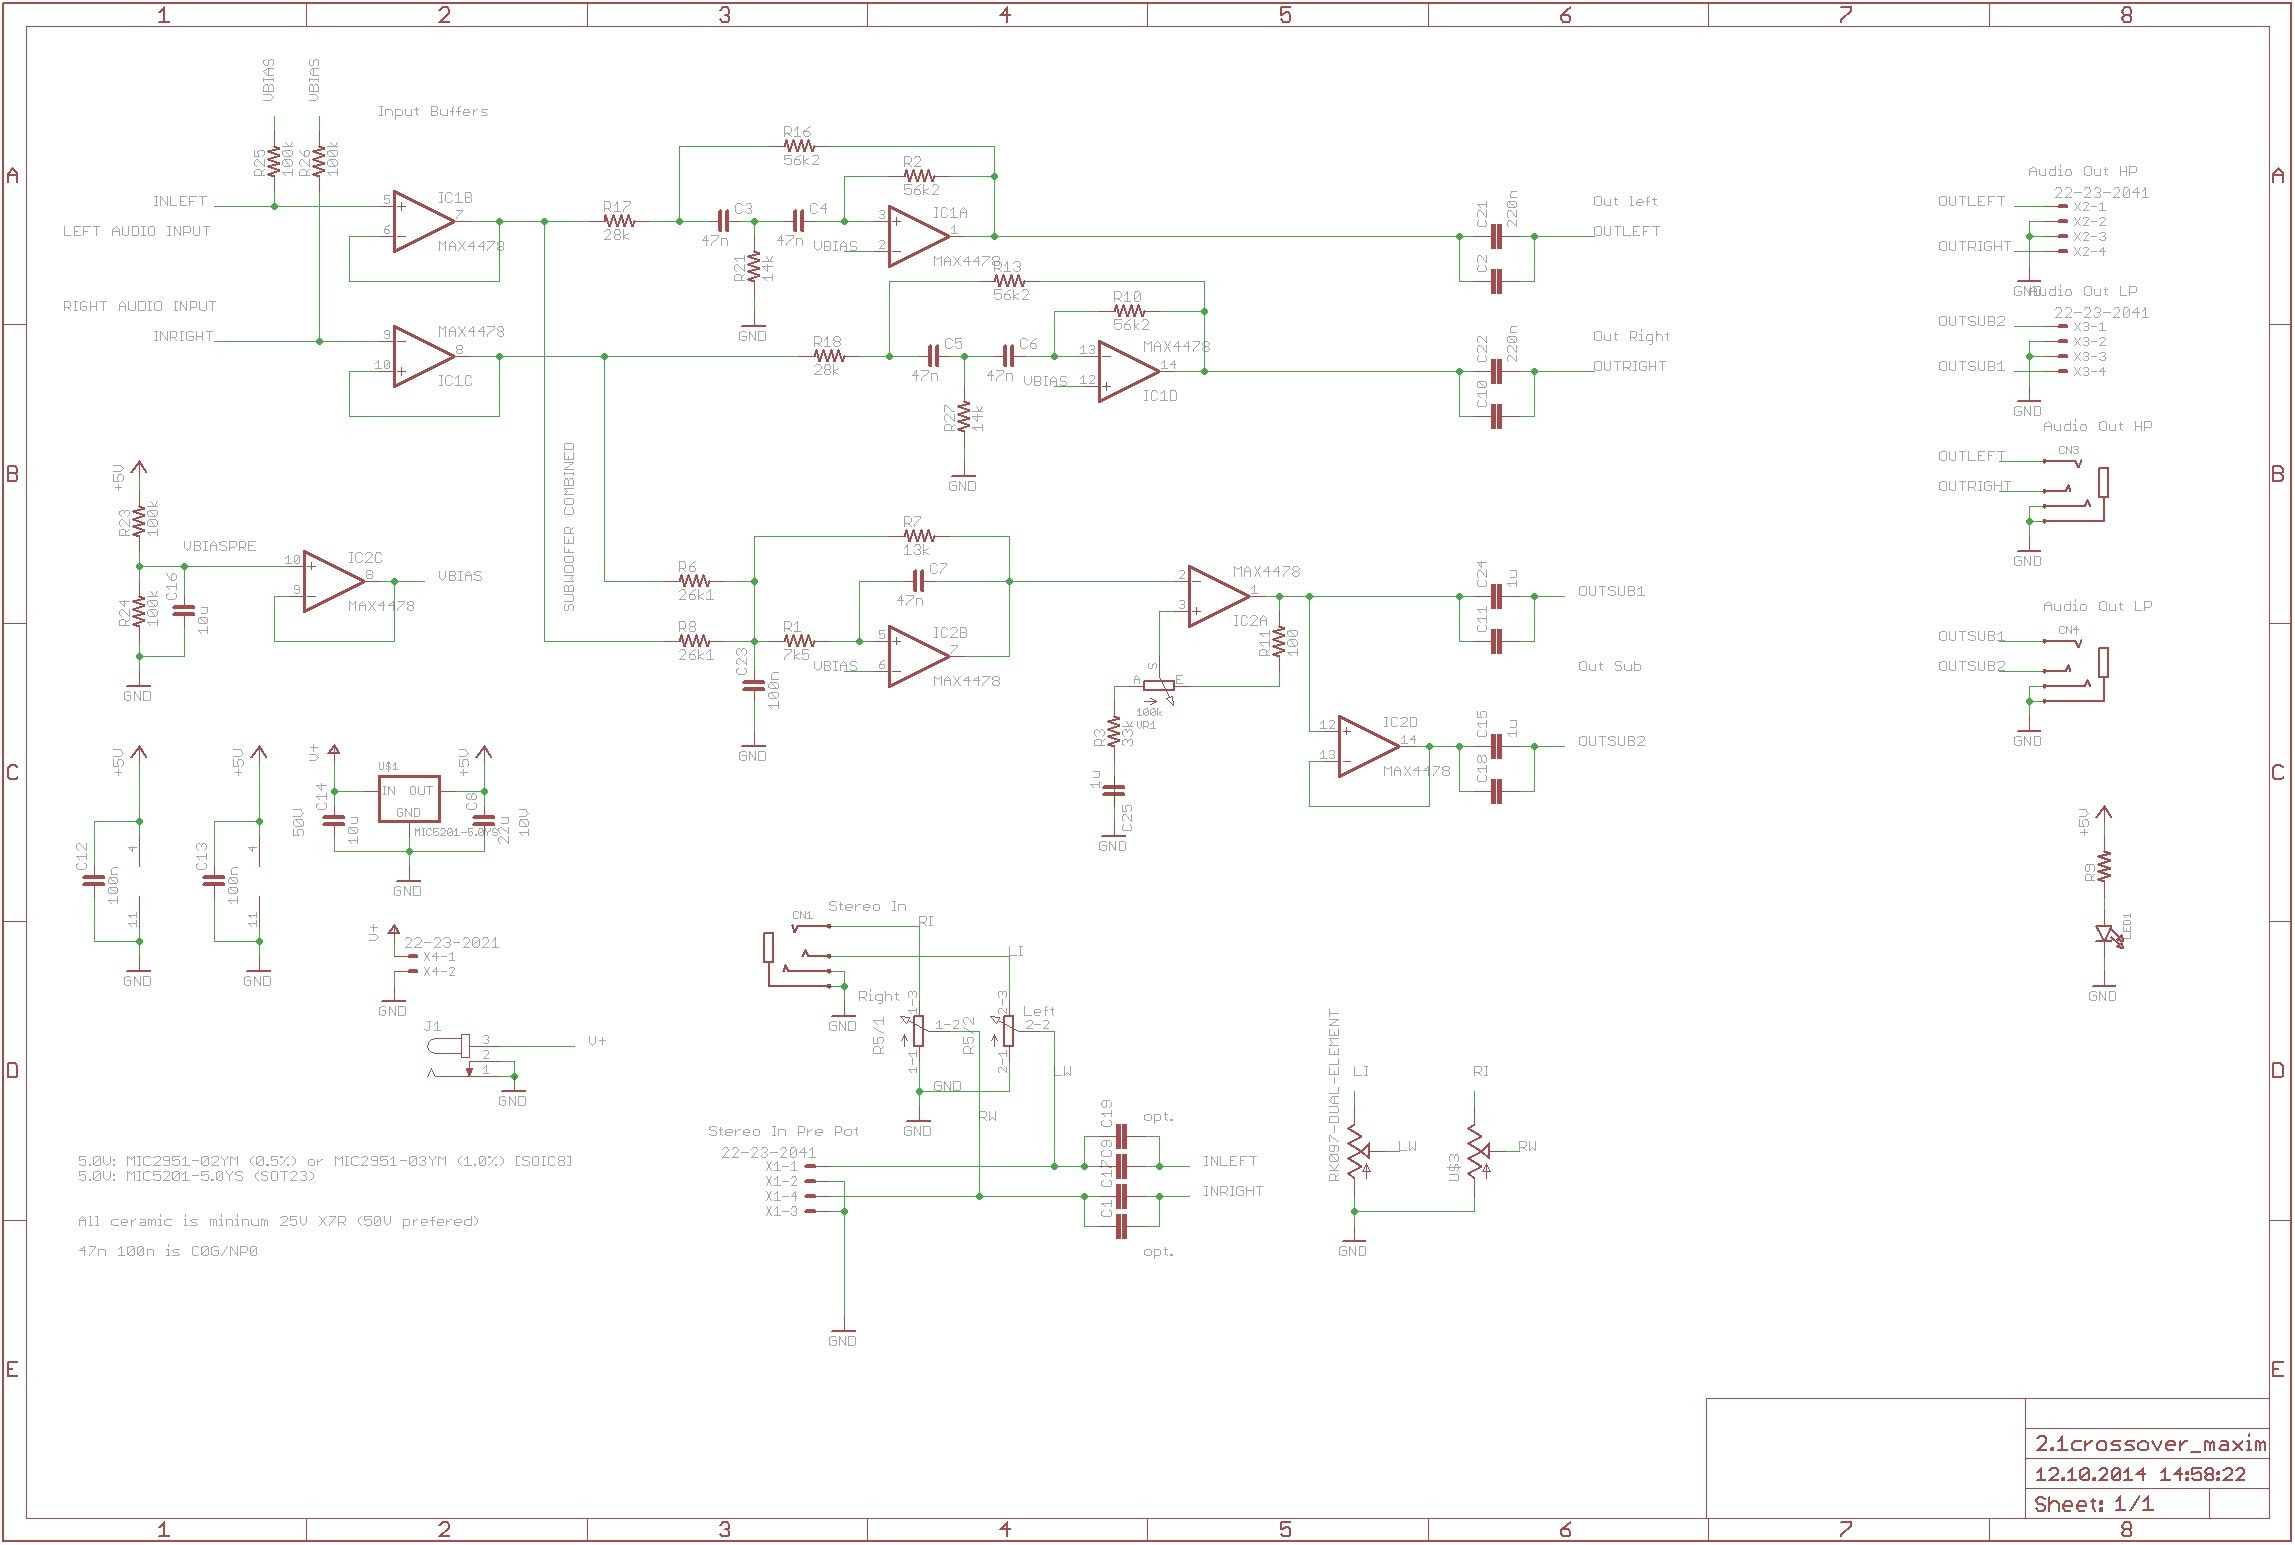 Diagram Schematic Awesome Inspirational Schematic Wiring Diagram Diagram